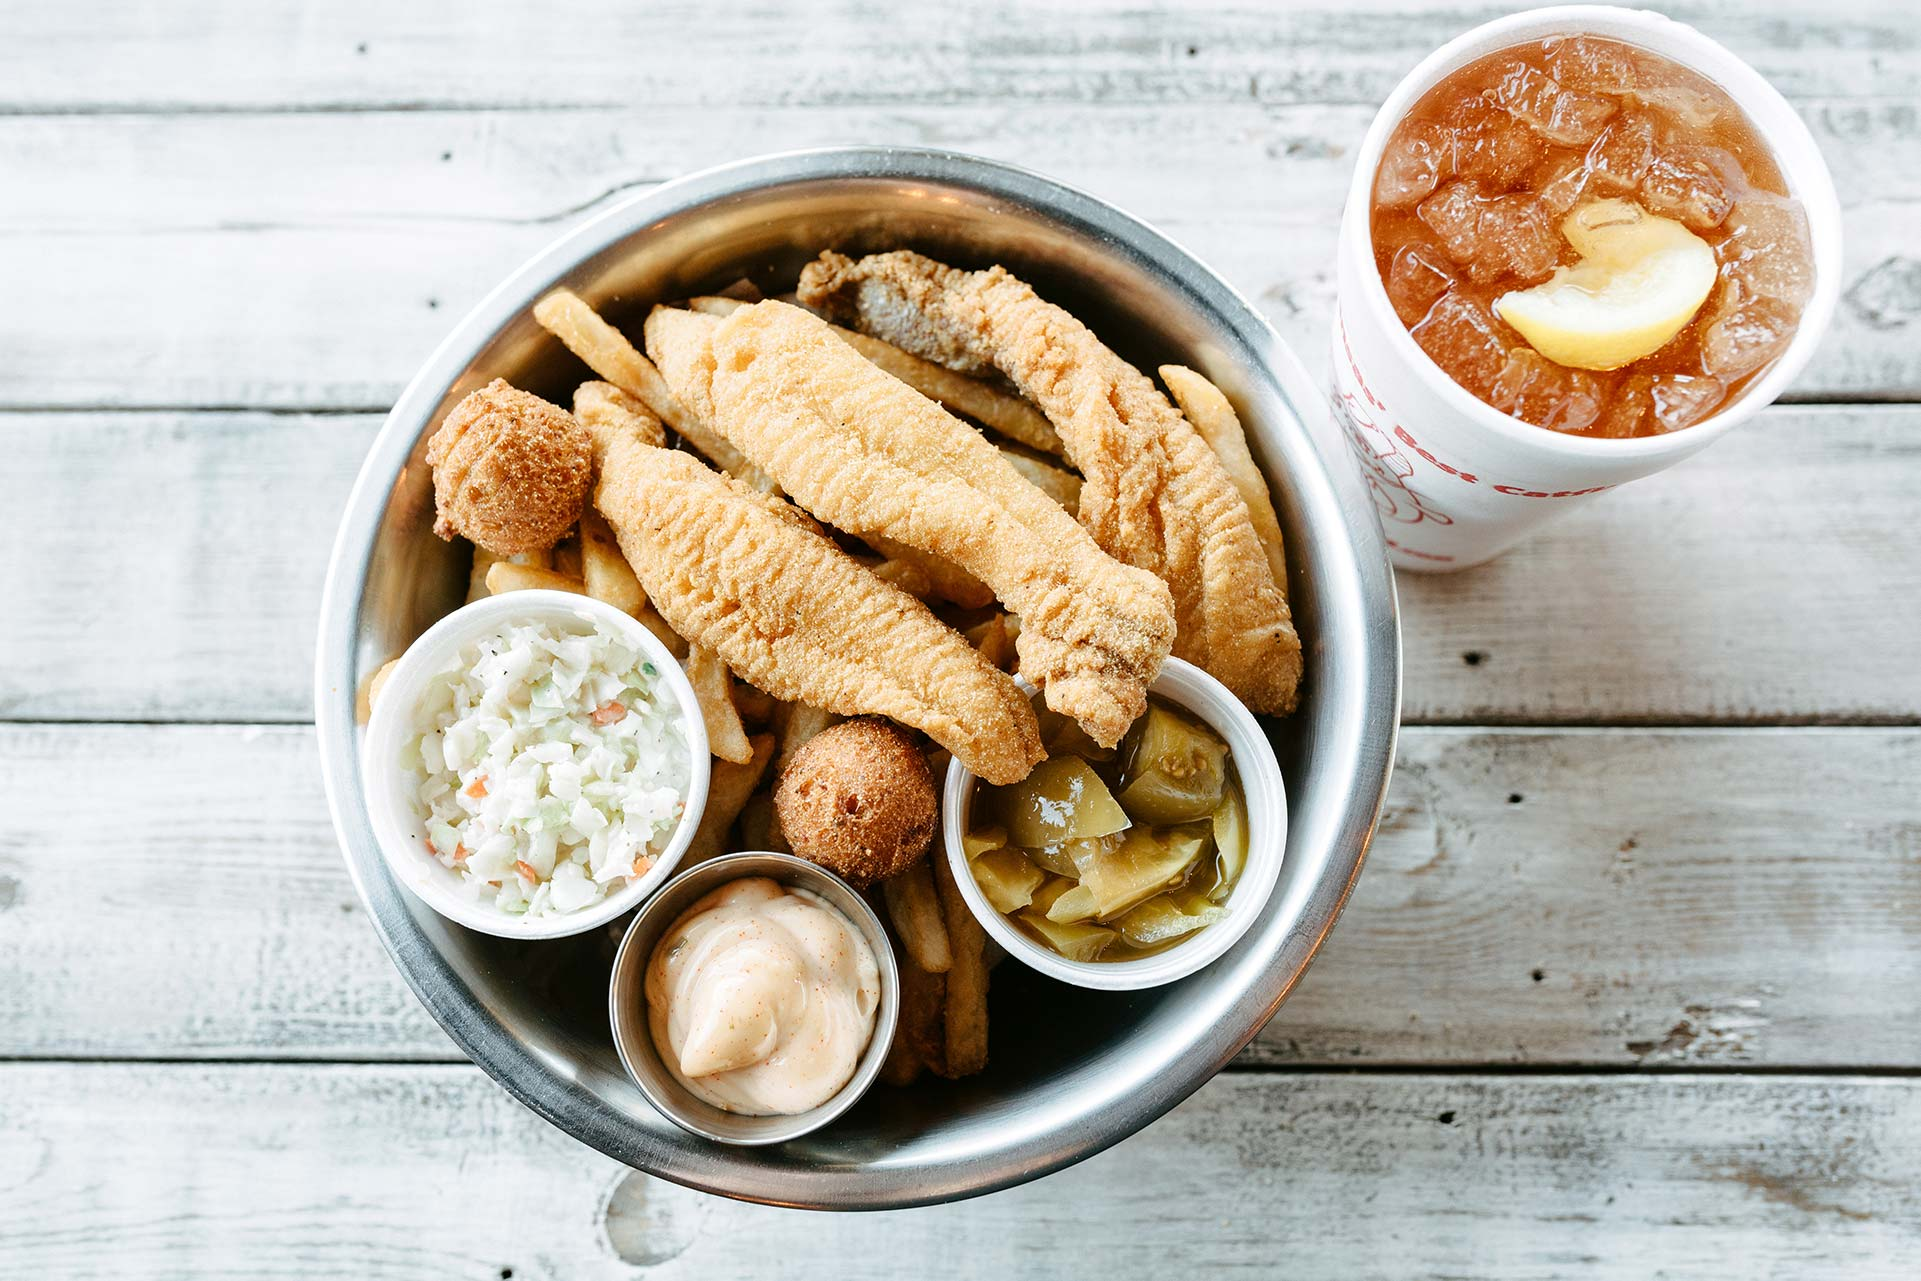 Delicious fried catfish and side dishes